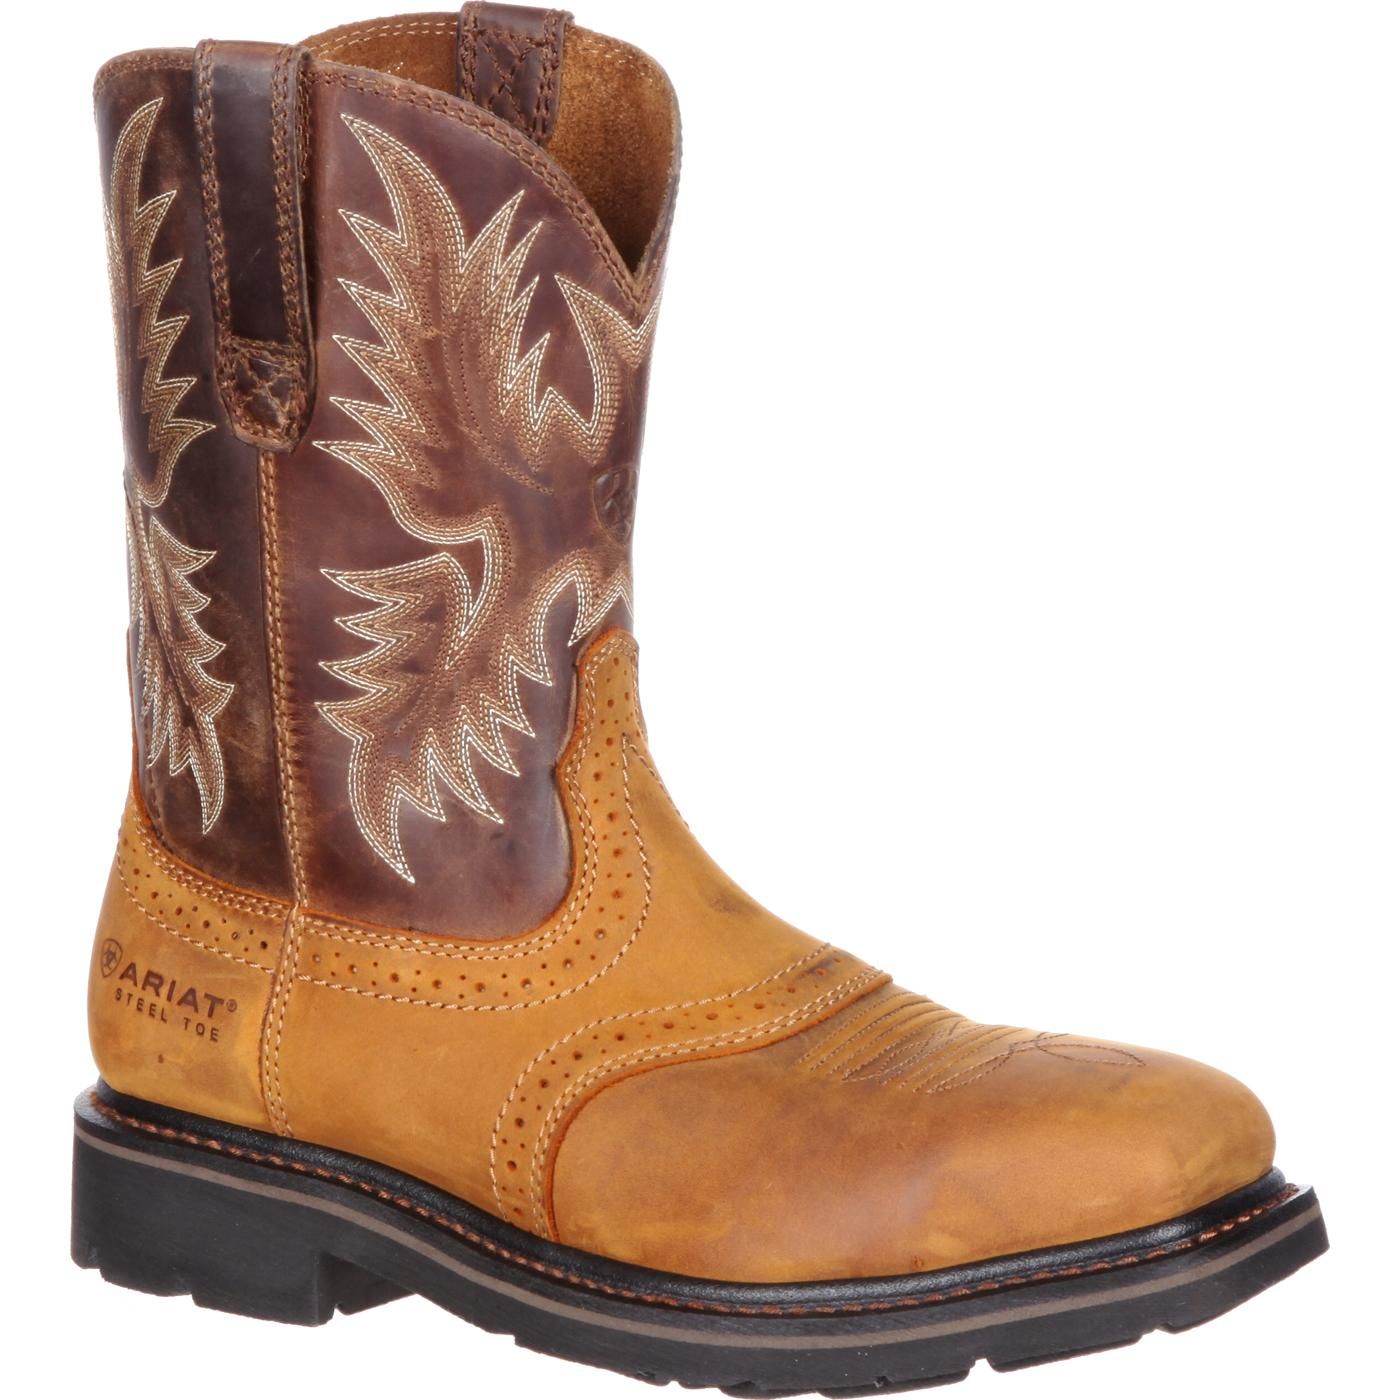 Ariat Sierra Wide Square Steel Toe Western Boot, #10010134